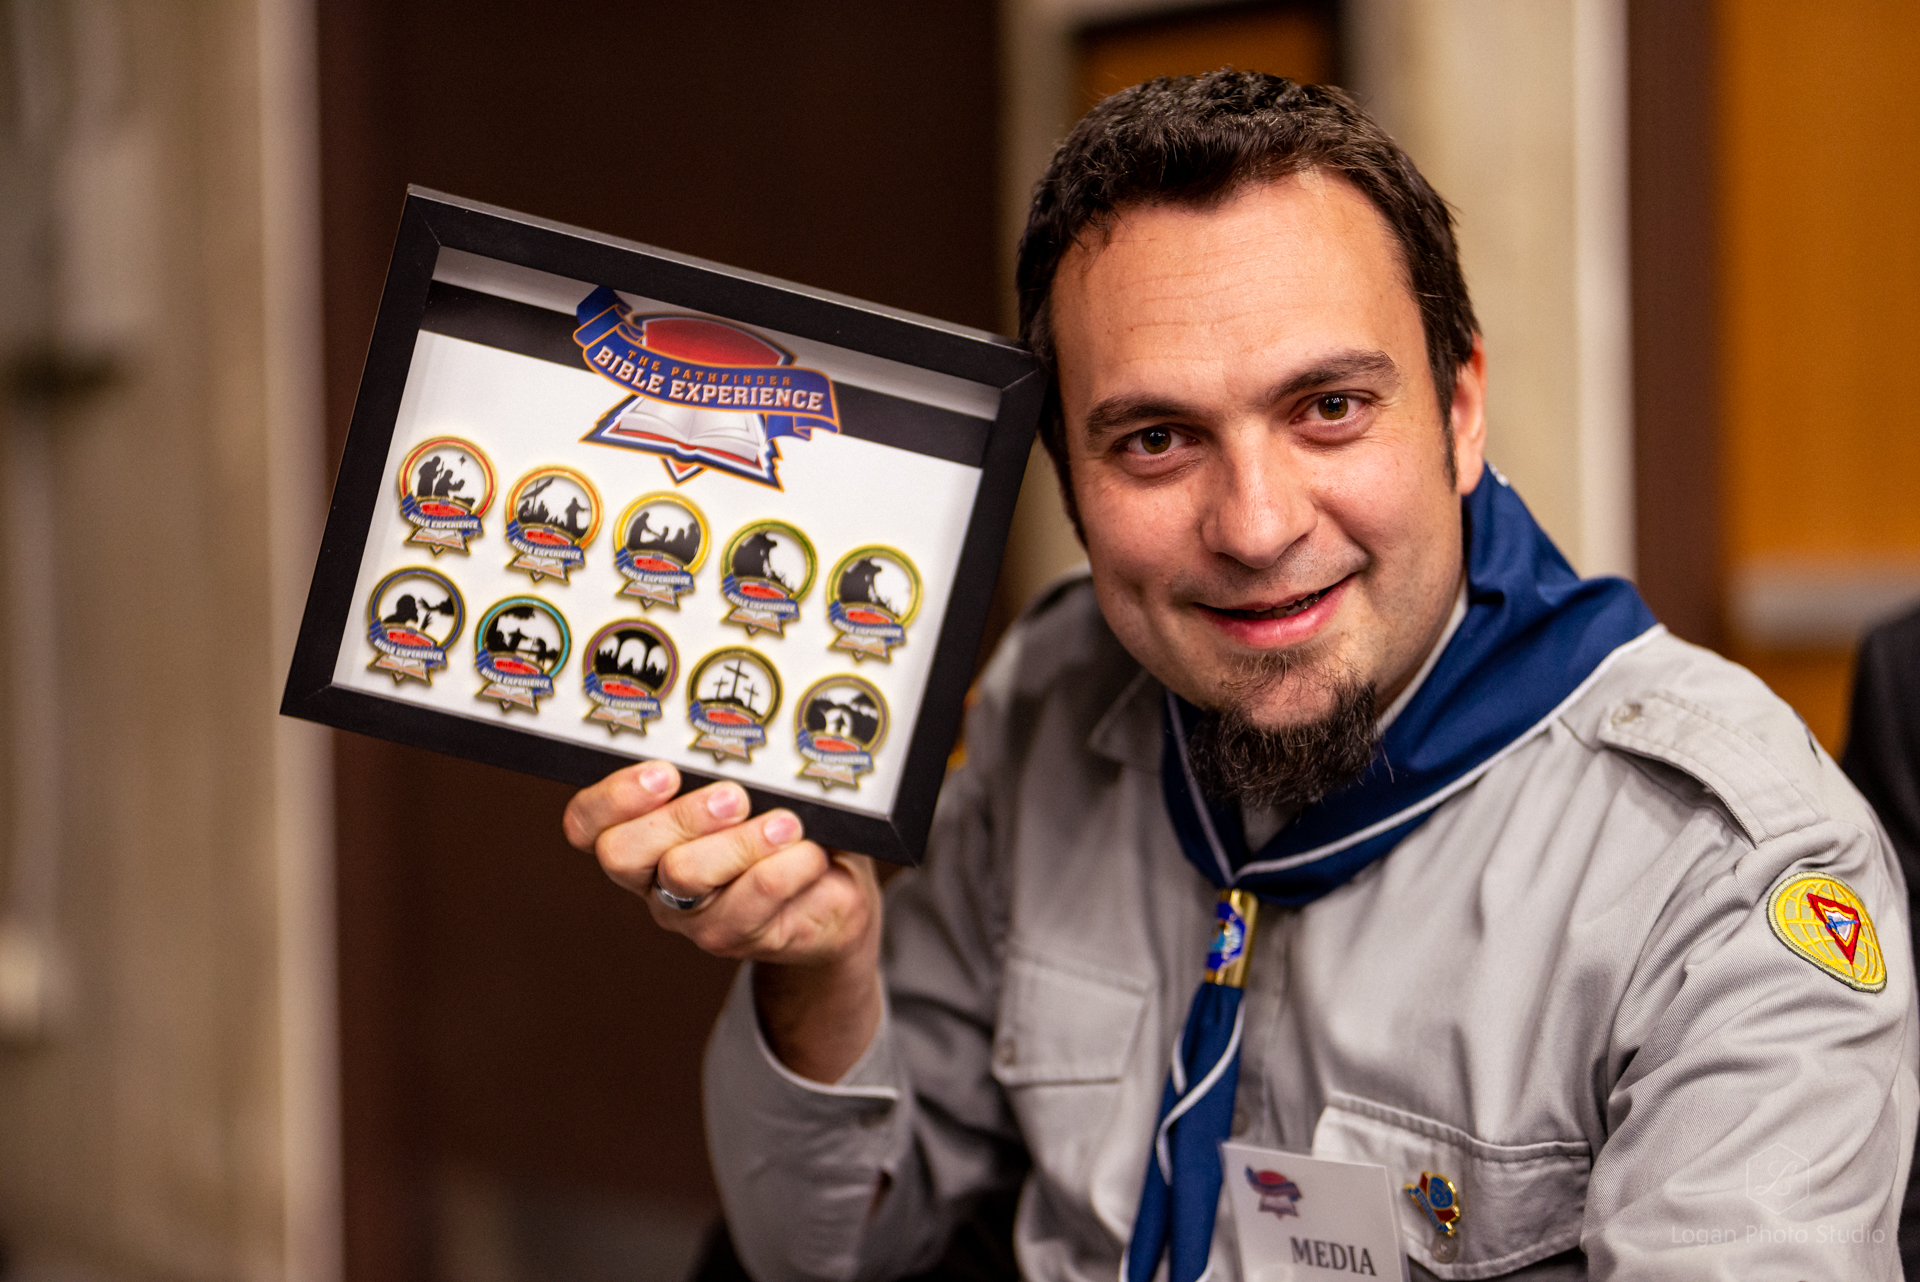 Youth director of the British Union Conference, Dejan Stojkovic, poses with pins from previous PBE events.